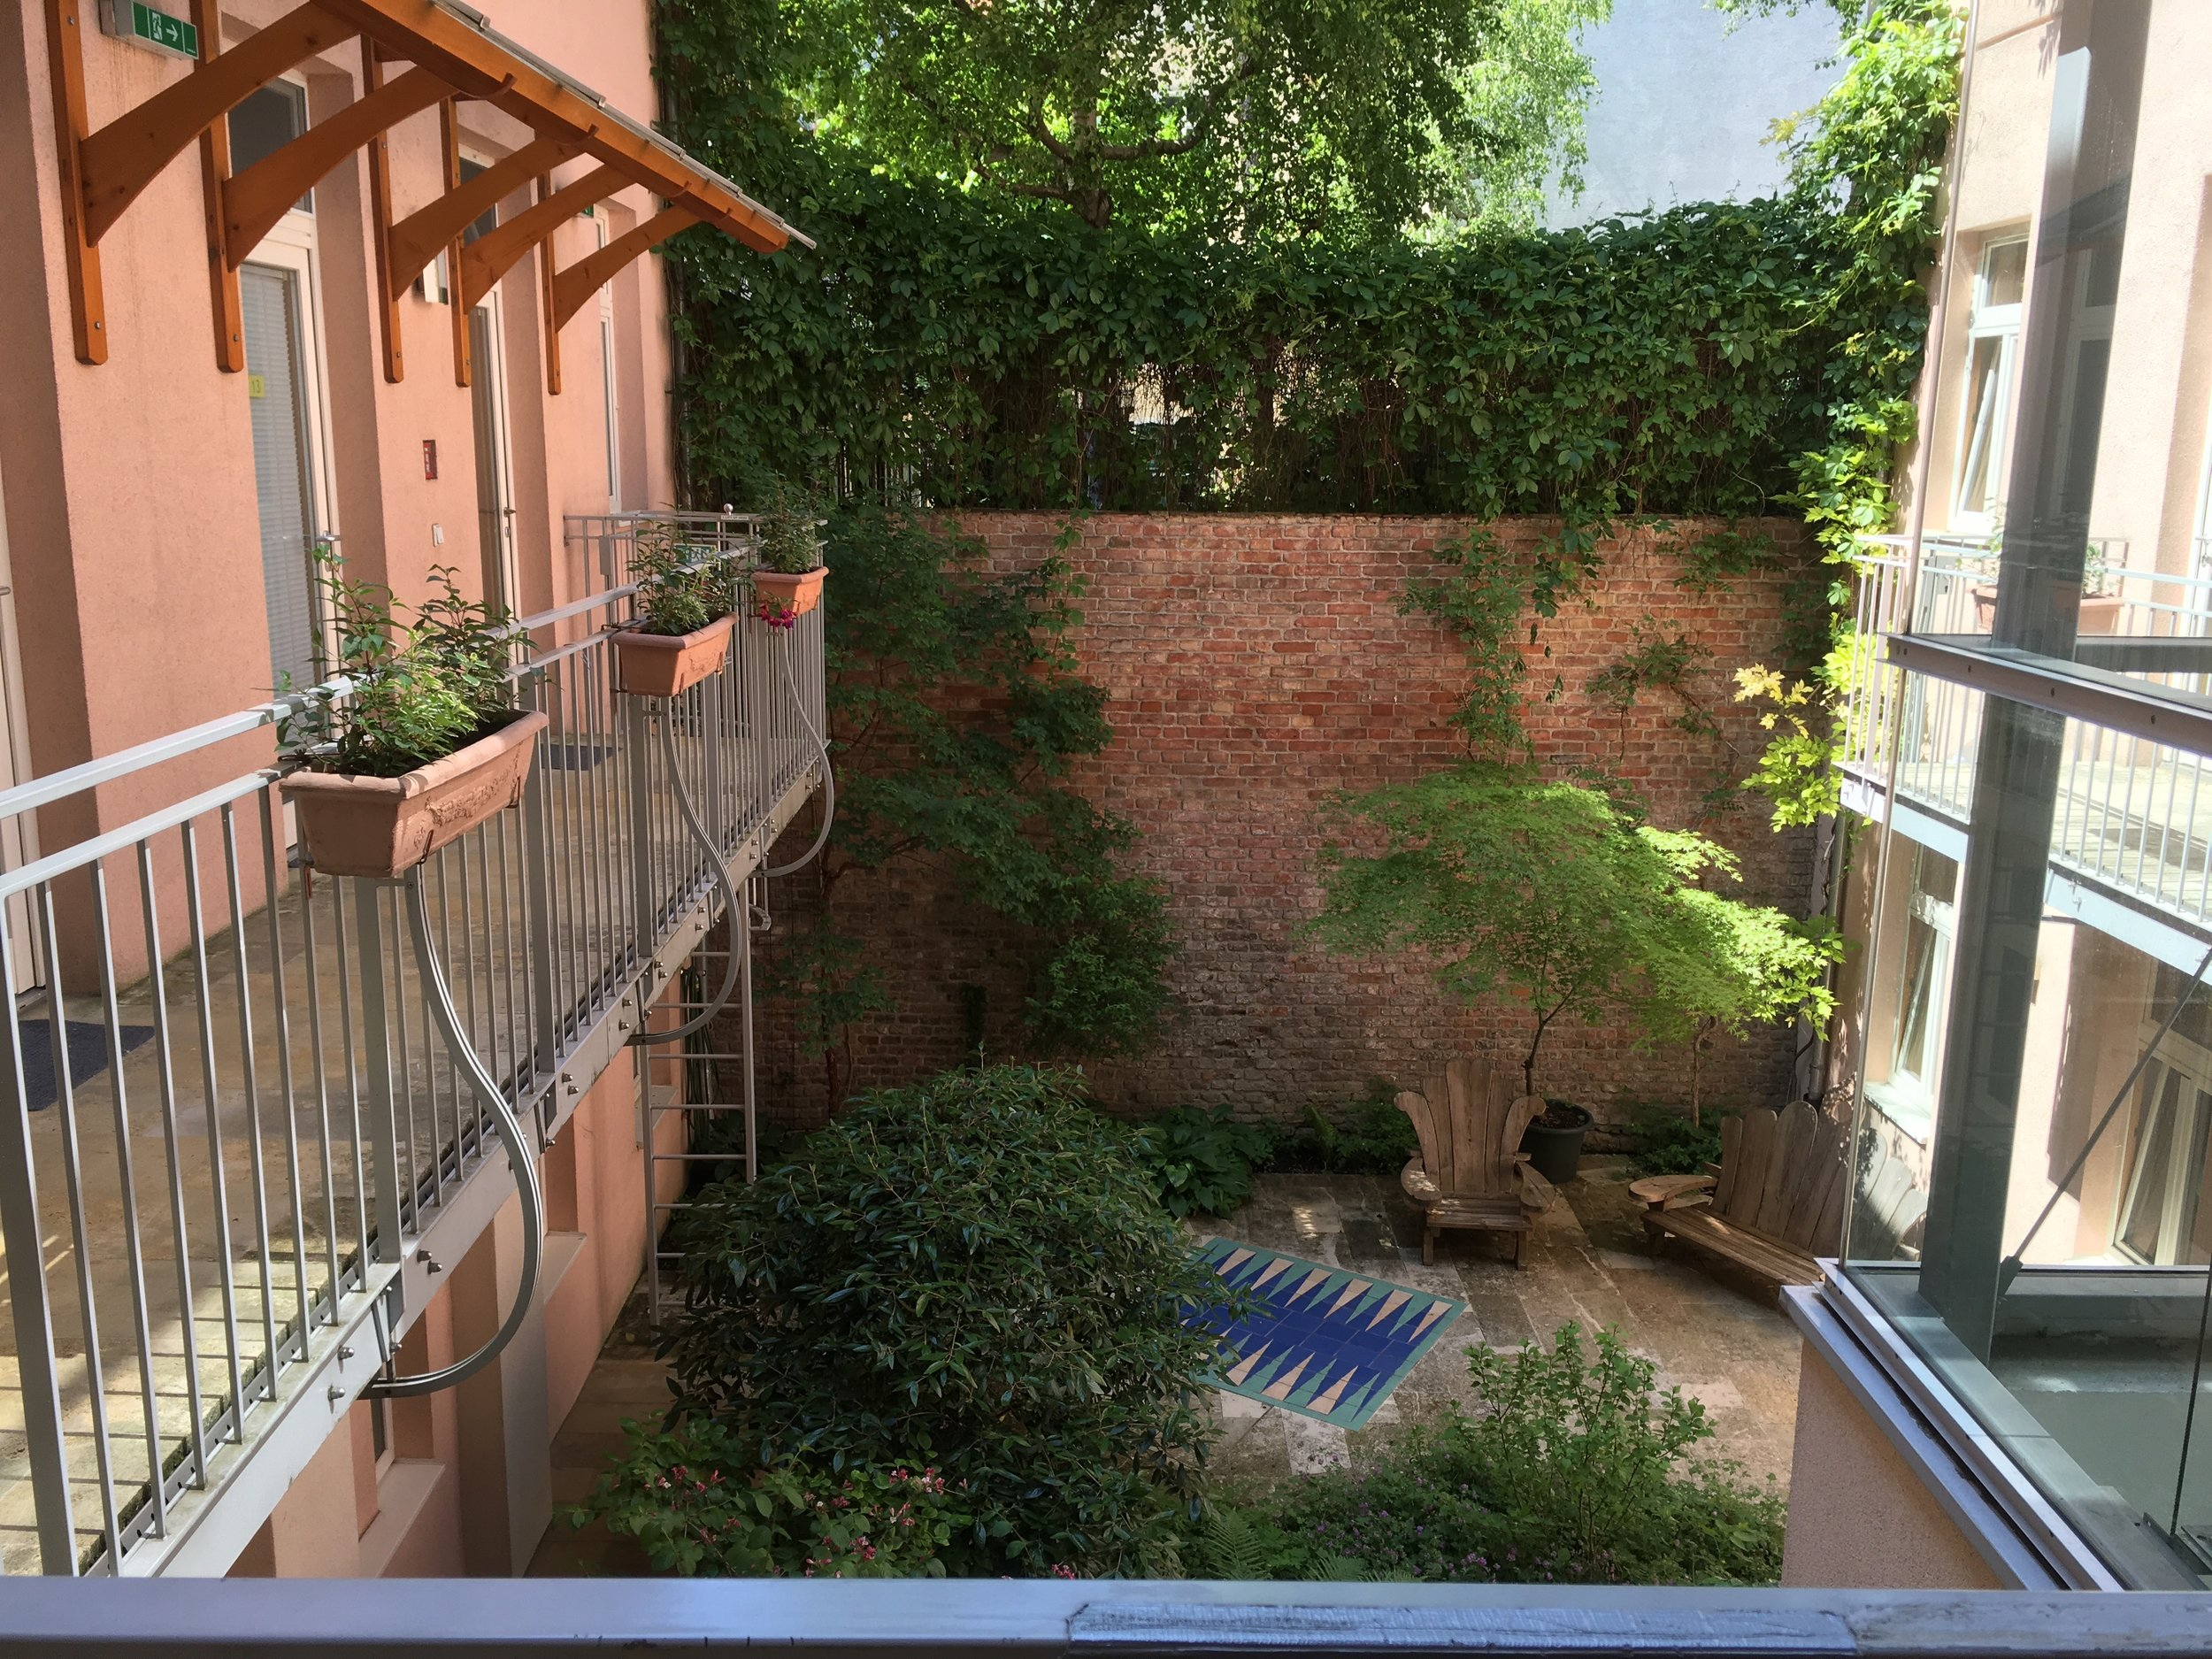 The courtyard view outside of my hostel room while I was backpacking throughout Europe (Vienna, Austria)